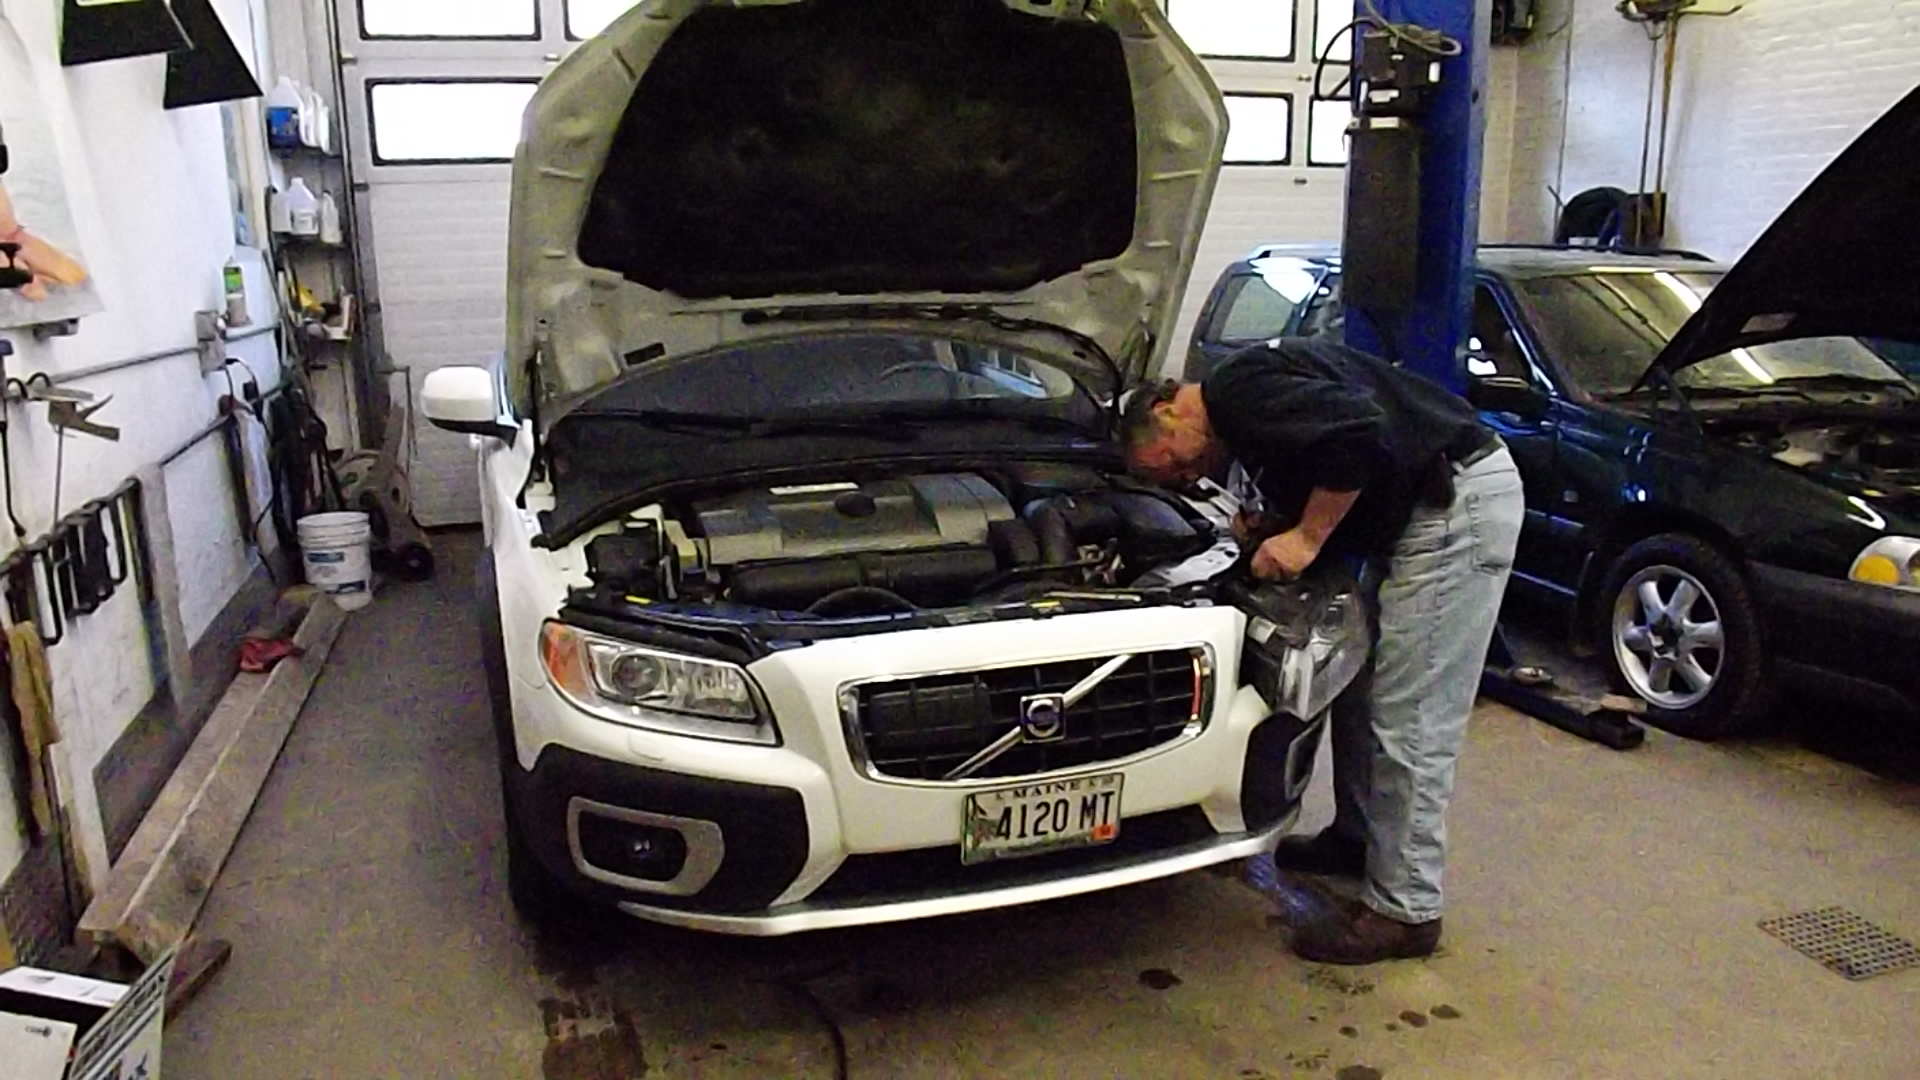 life of auto is that specialist many and years volvo good doylestown more thousands the for extend in news miles repair vglha services